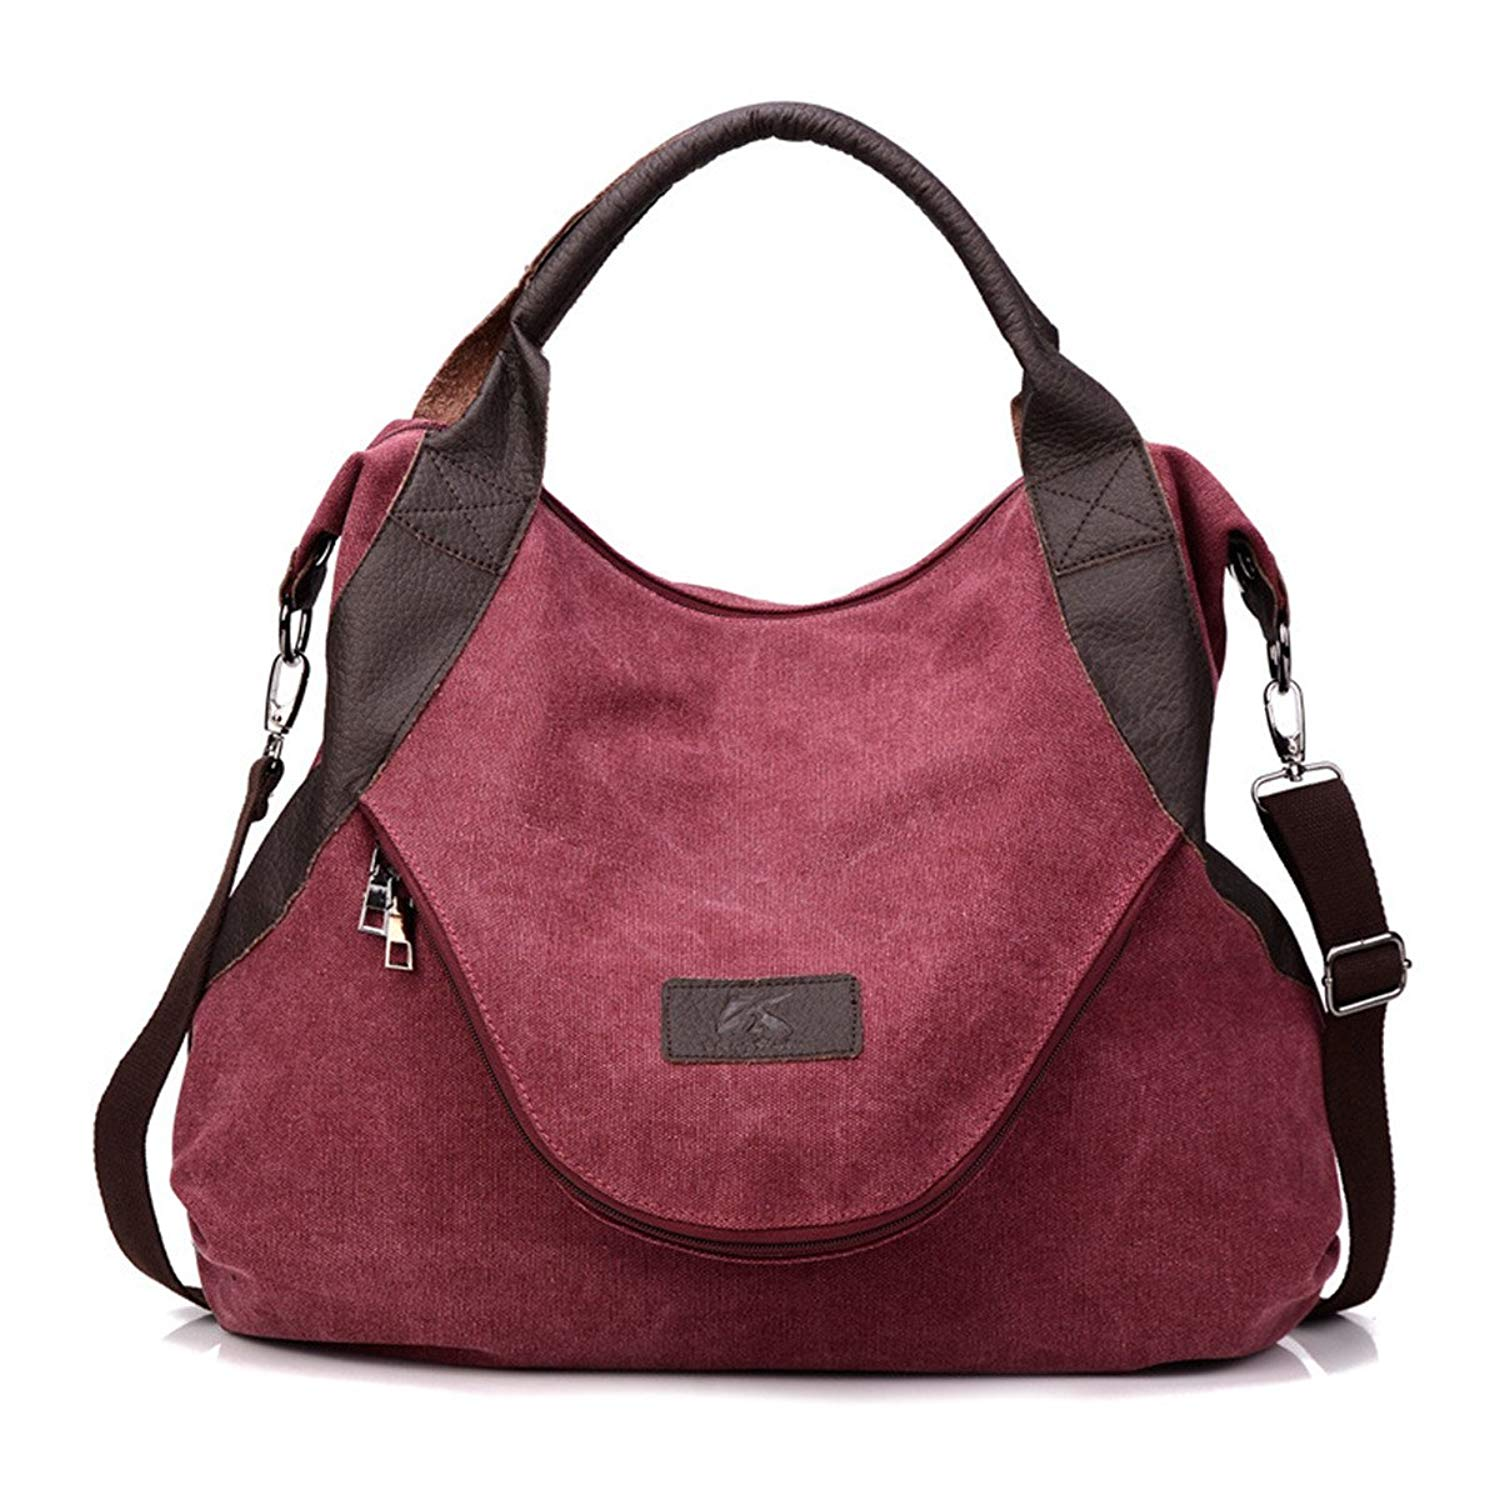 2018 Large Pocket Casual Women's Shoulder Cross body Handbags Canvas Leather Bags canvas tote bag